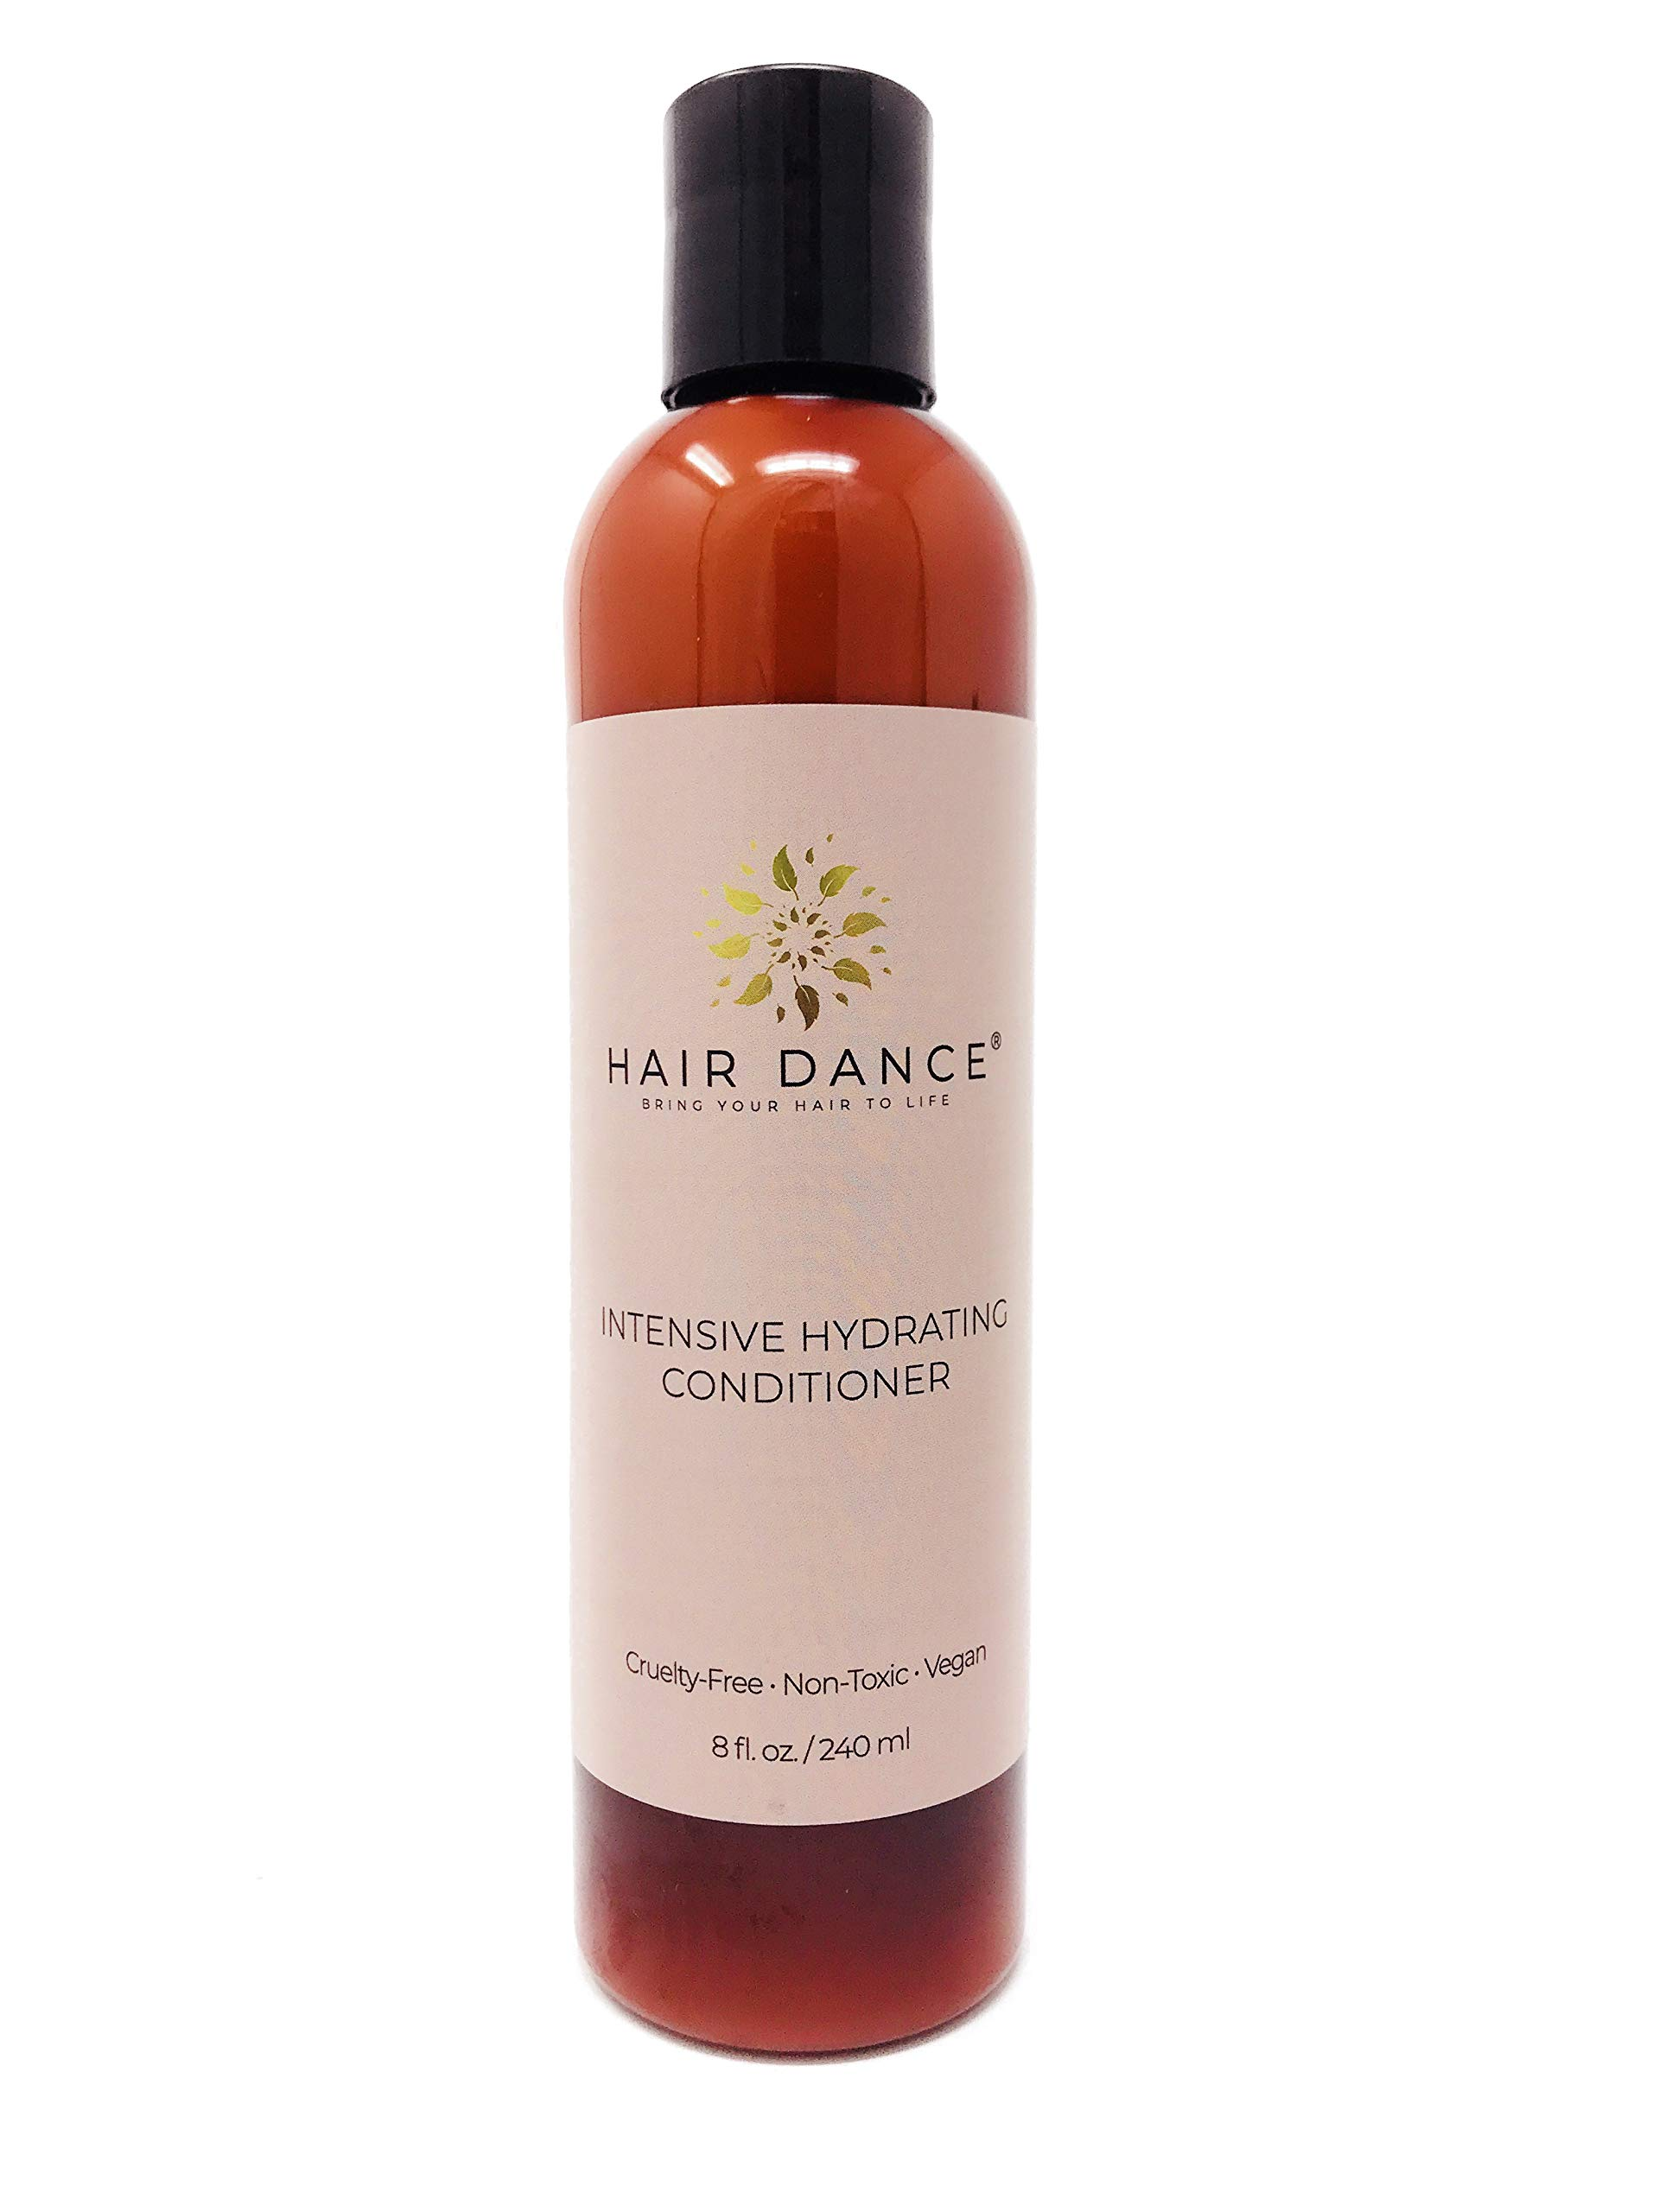 Hydrating Conditioner, Proteins, Nourishing Neem, Walnut Oils. Soothing Aloe Vera for Healthy Hair. No Sulfates, Silicones, Parabens Grapefruit Scent 8 oz. New Product - Reduced, Introductory Pricing!